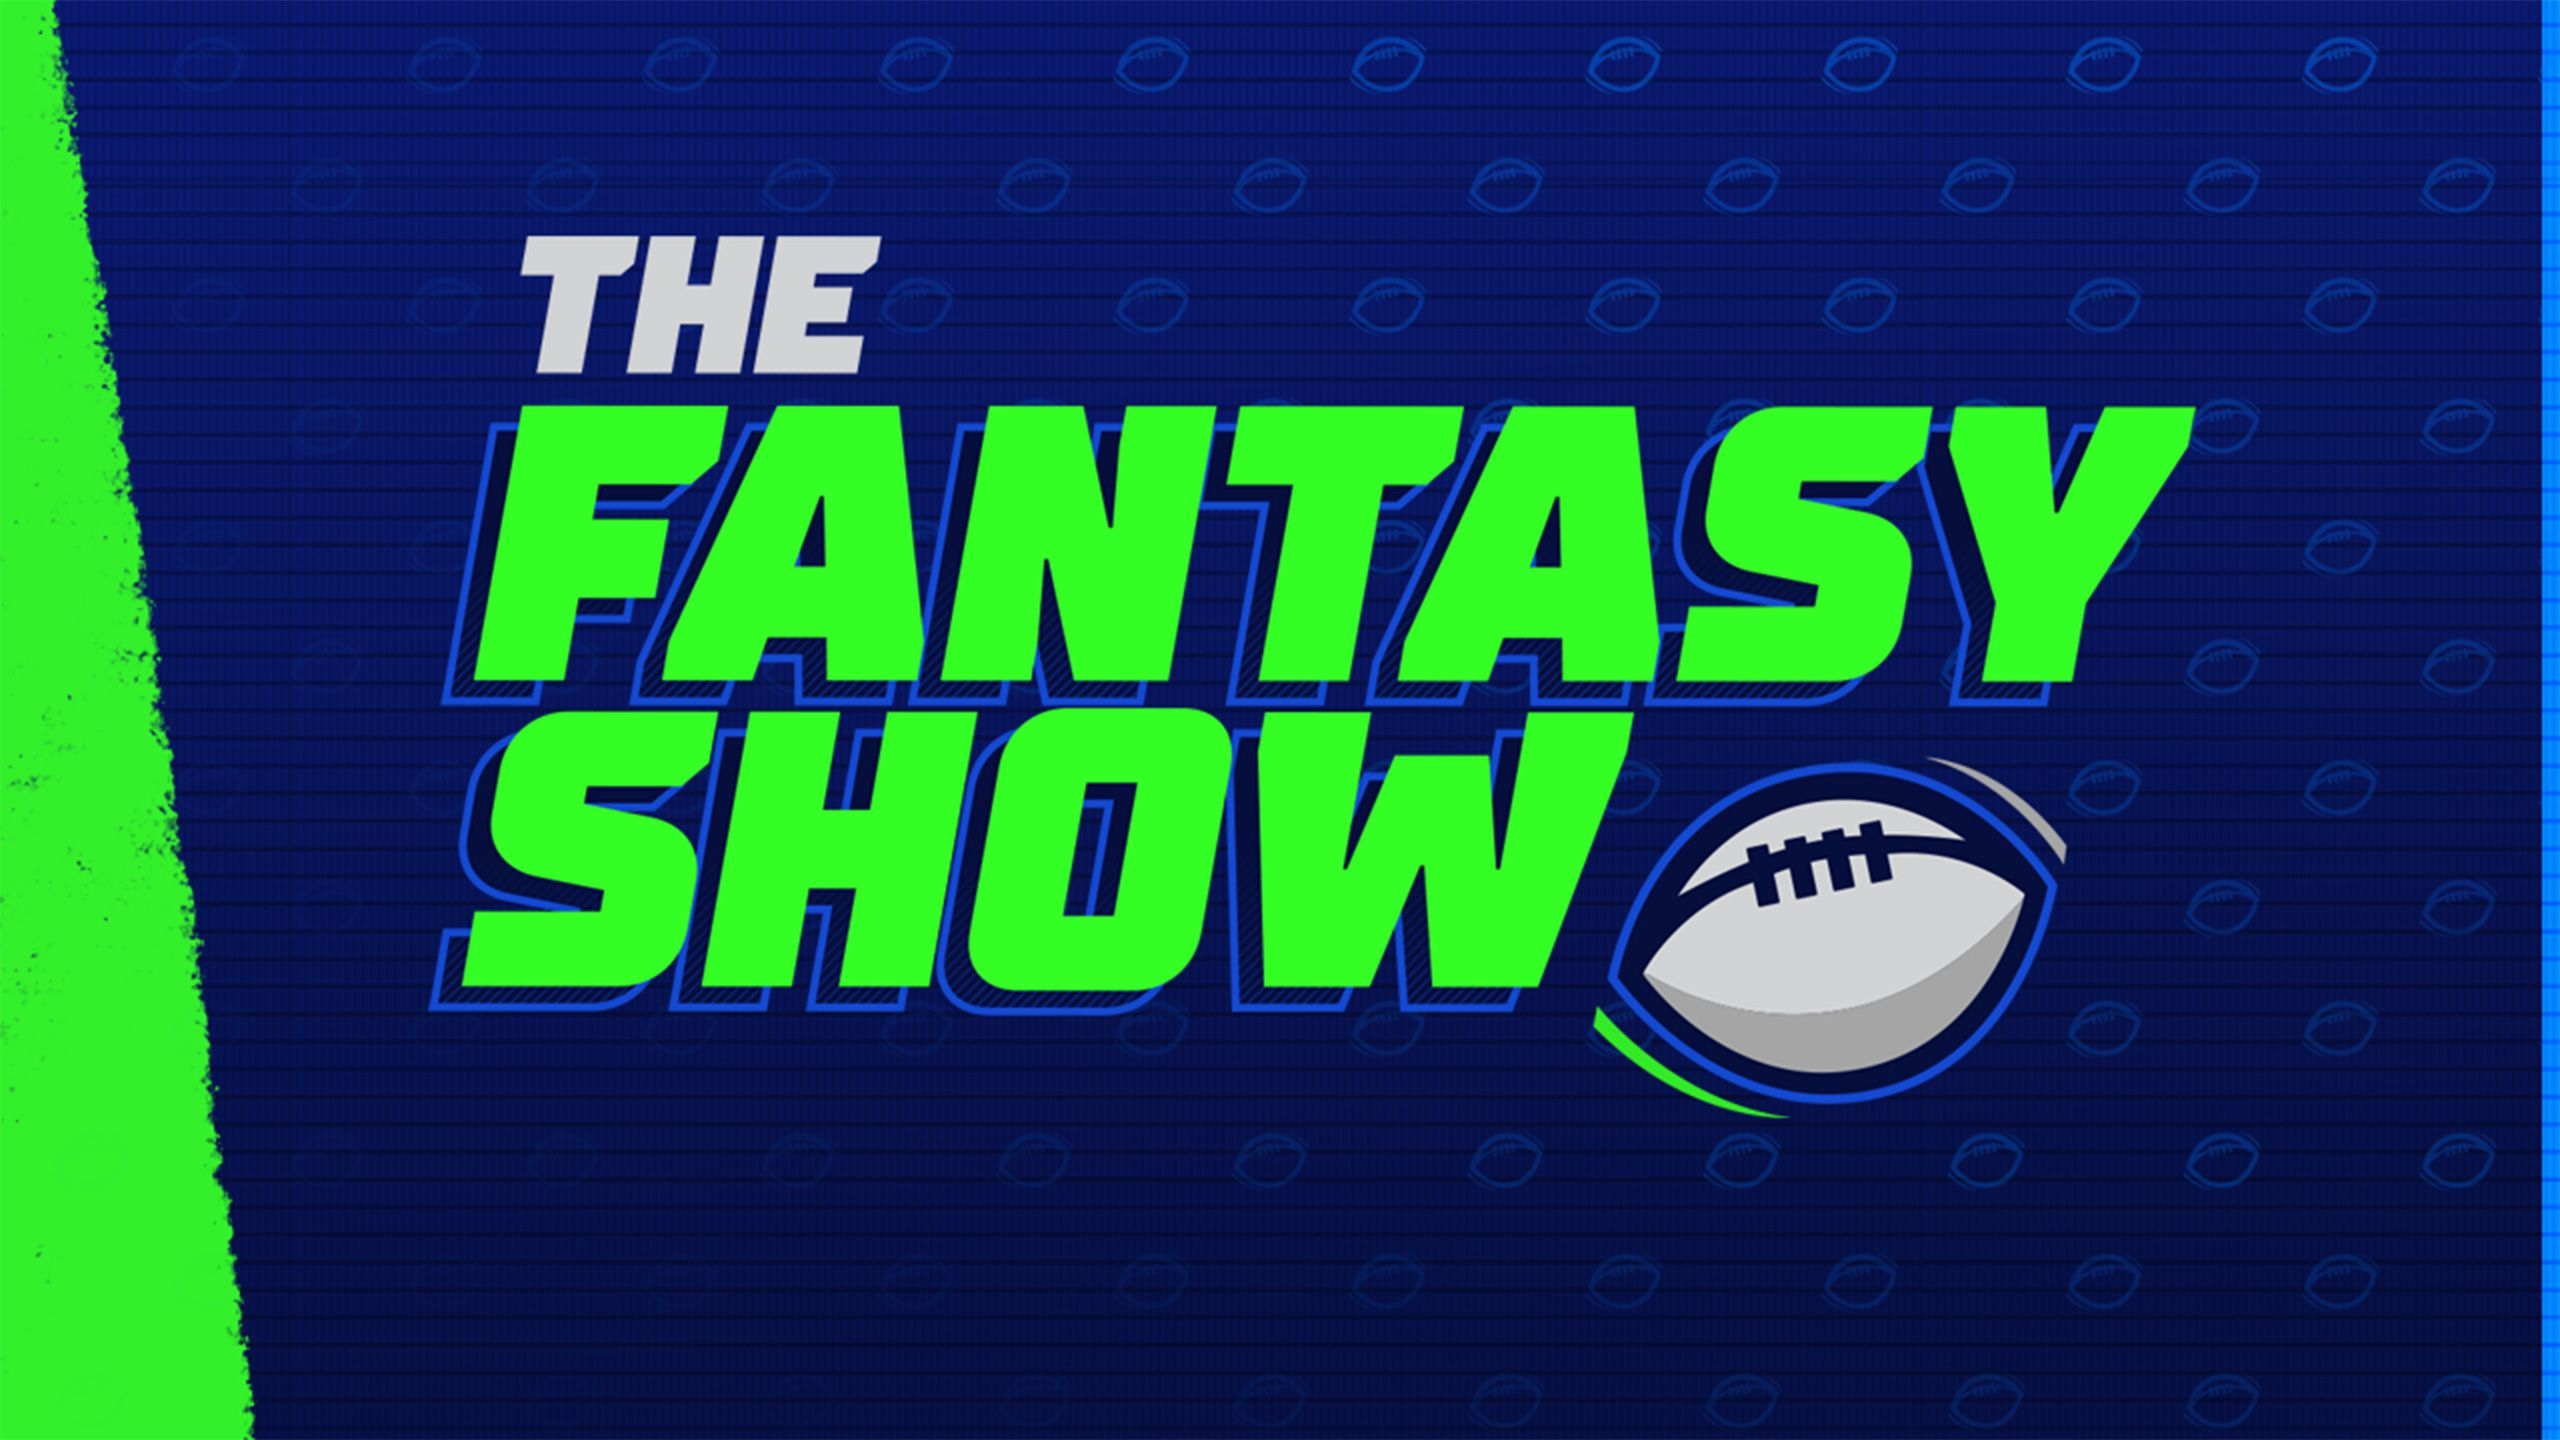 Wed, 10/18 - The Fantasy Show presented by E*Trade